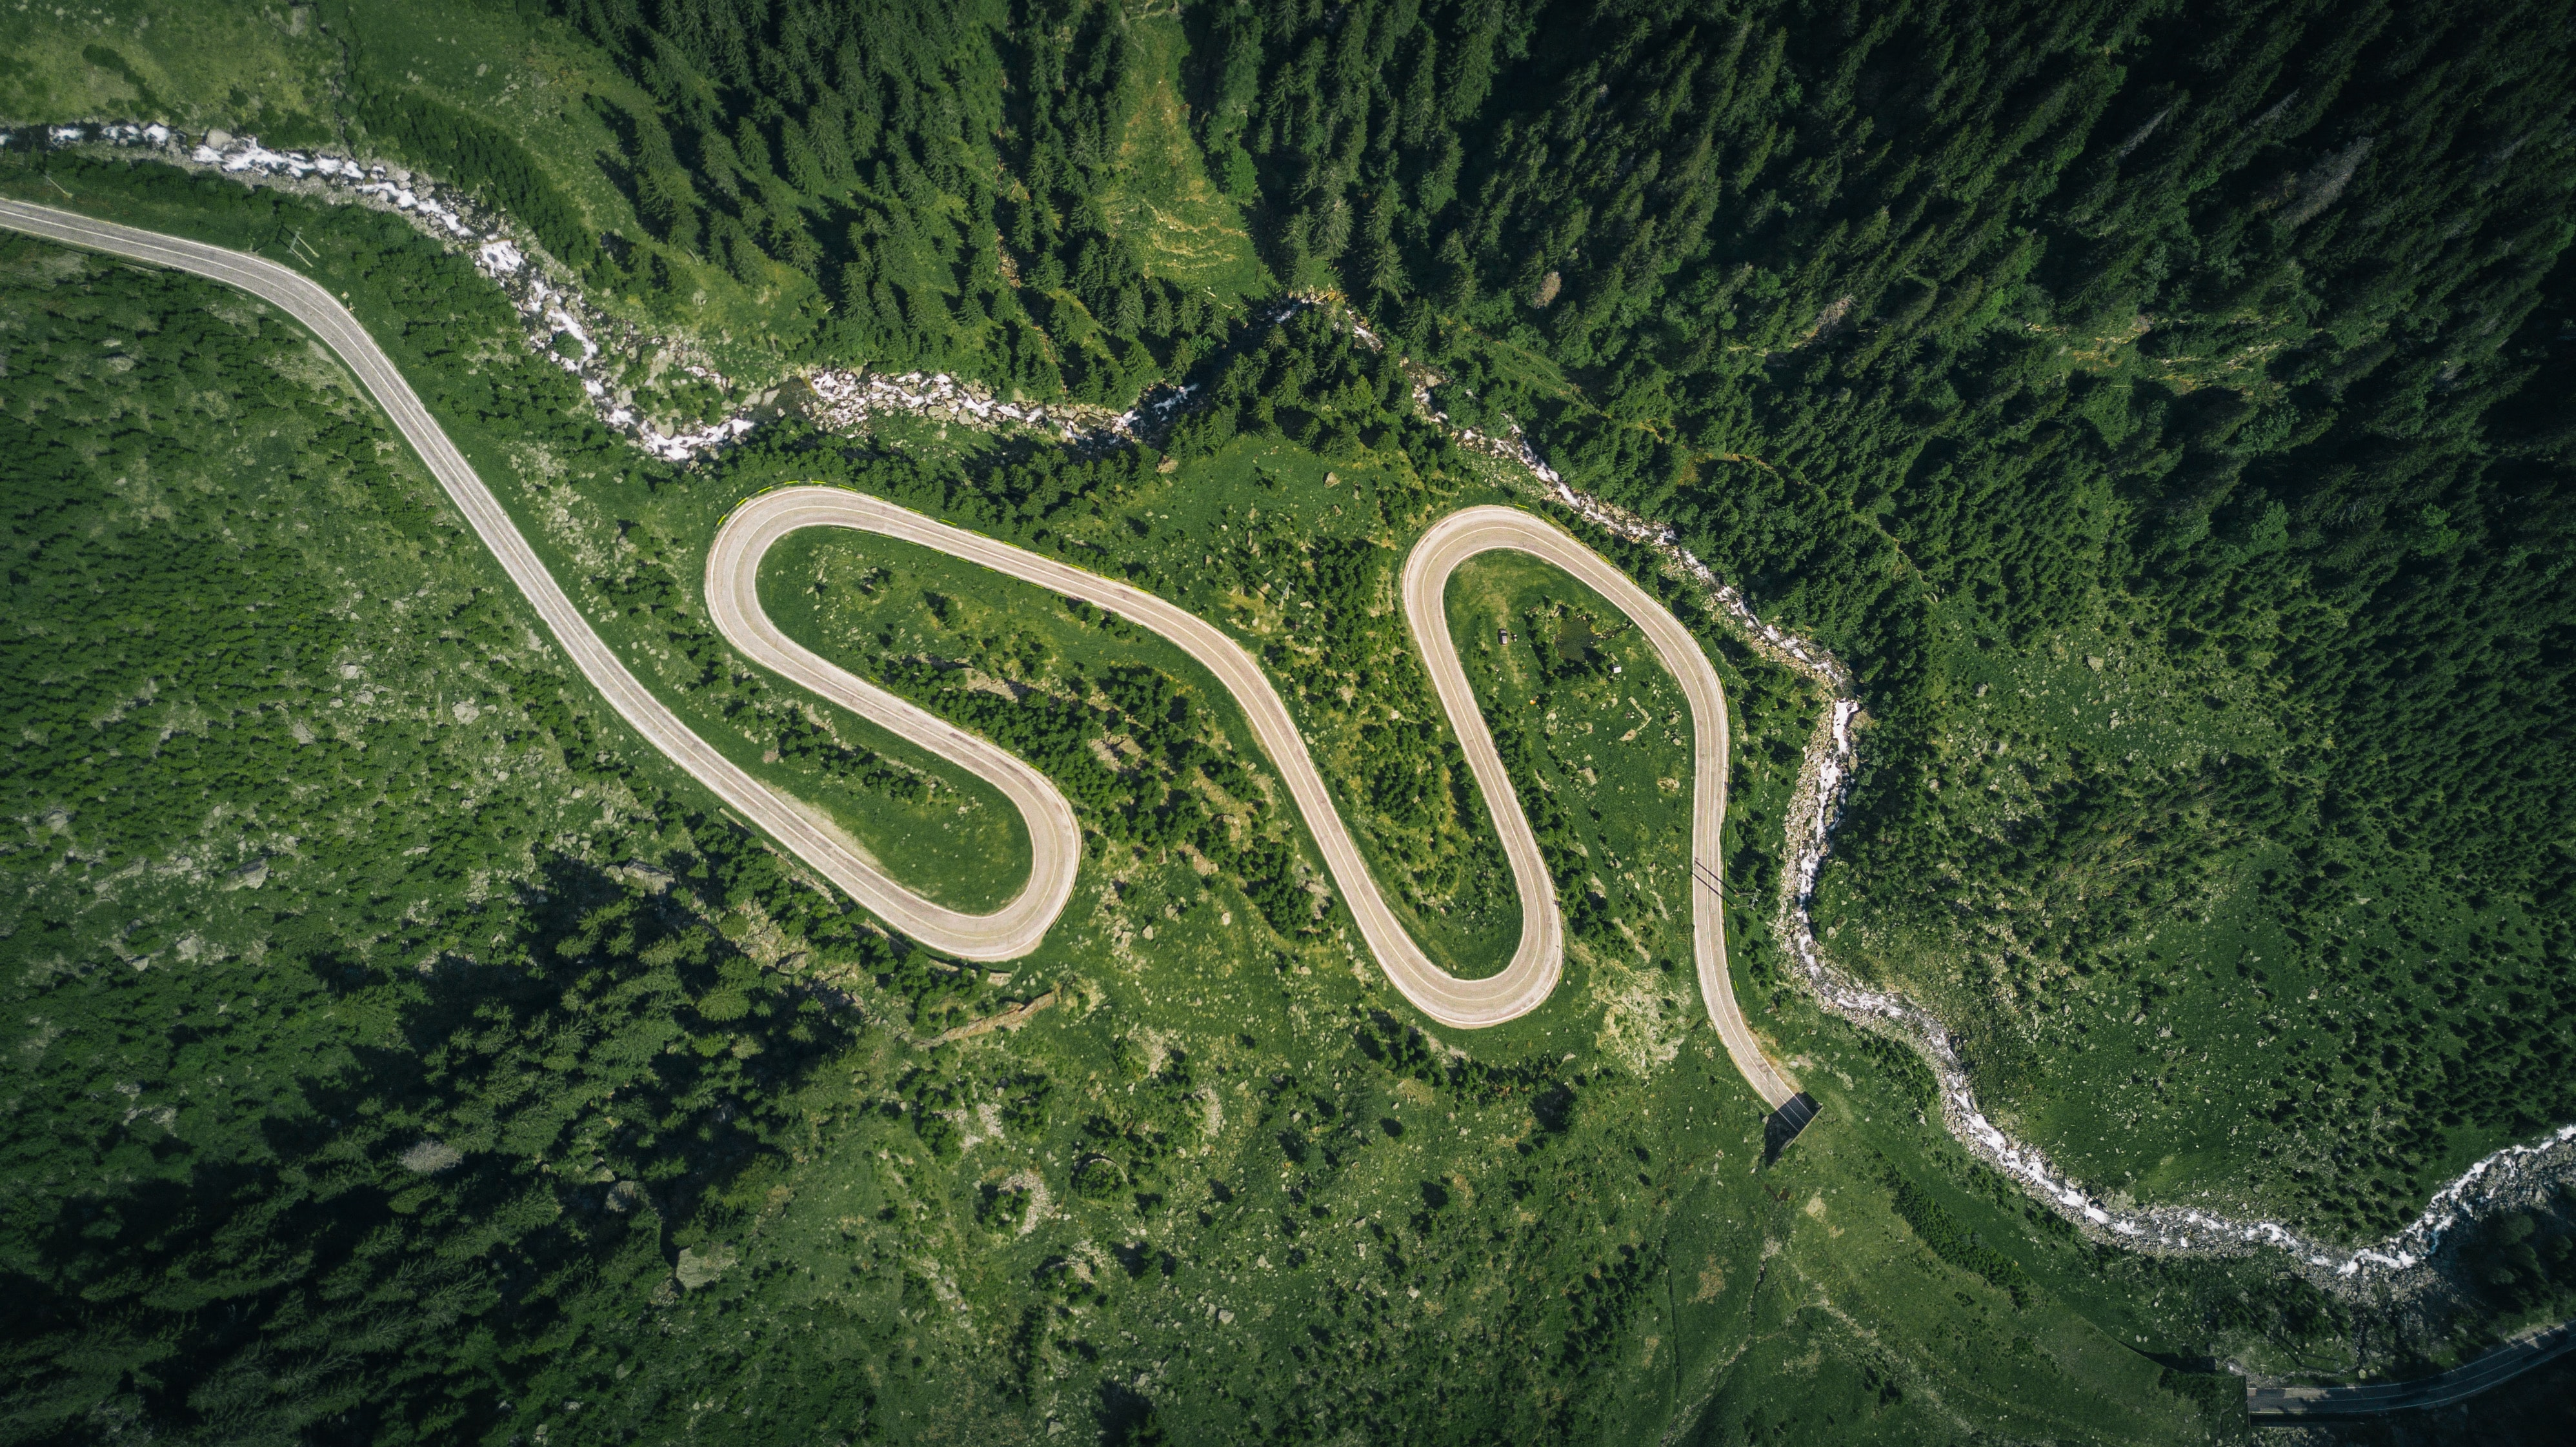 A drone shot of a zigzagging road leading into a tunnel